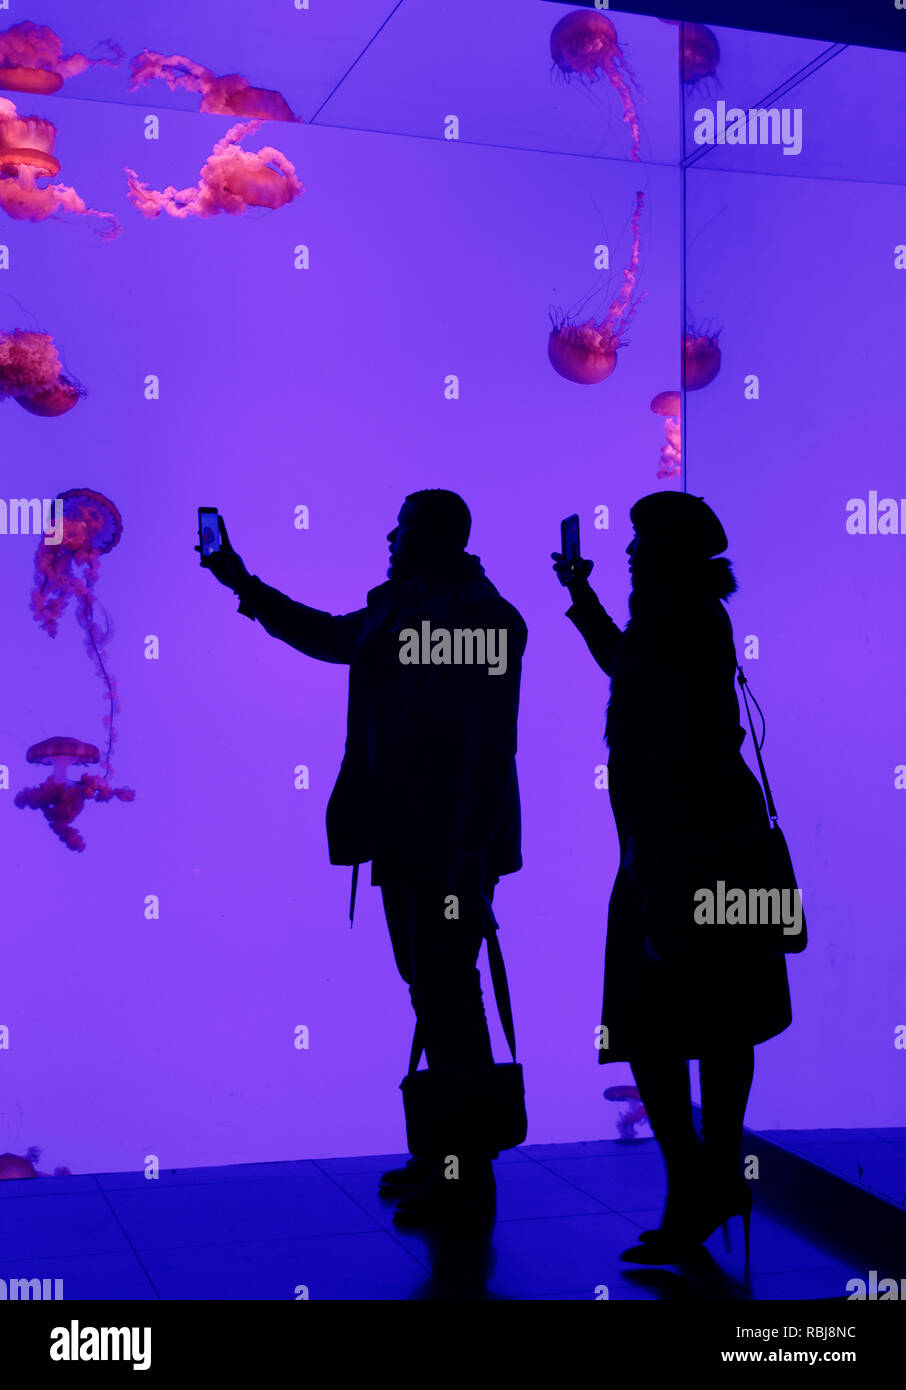 two-people-taking-phtots-silhouetted-aga